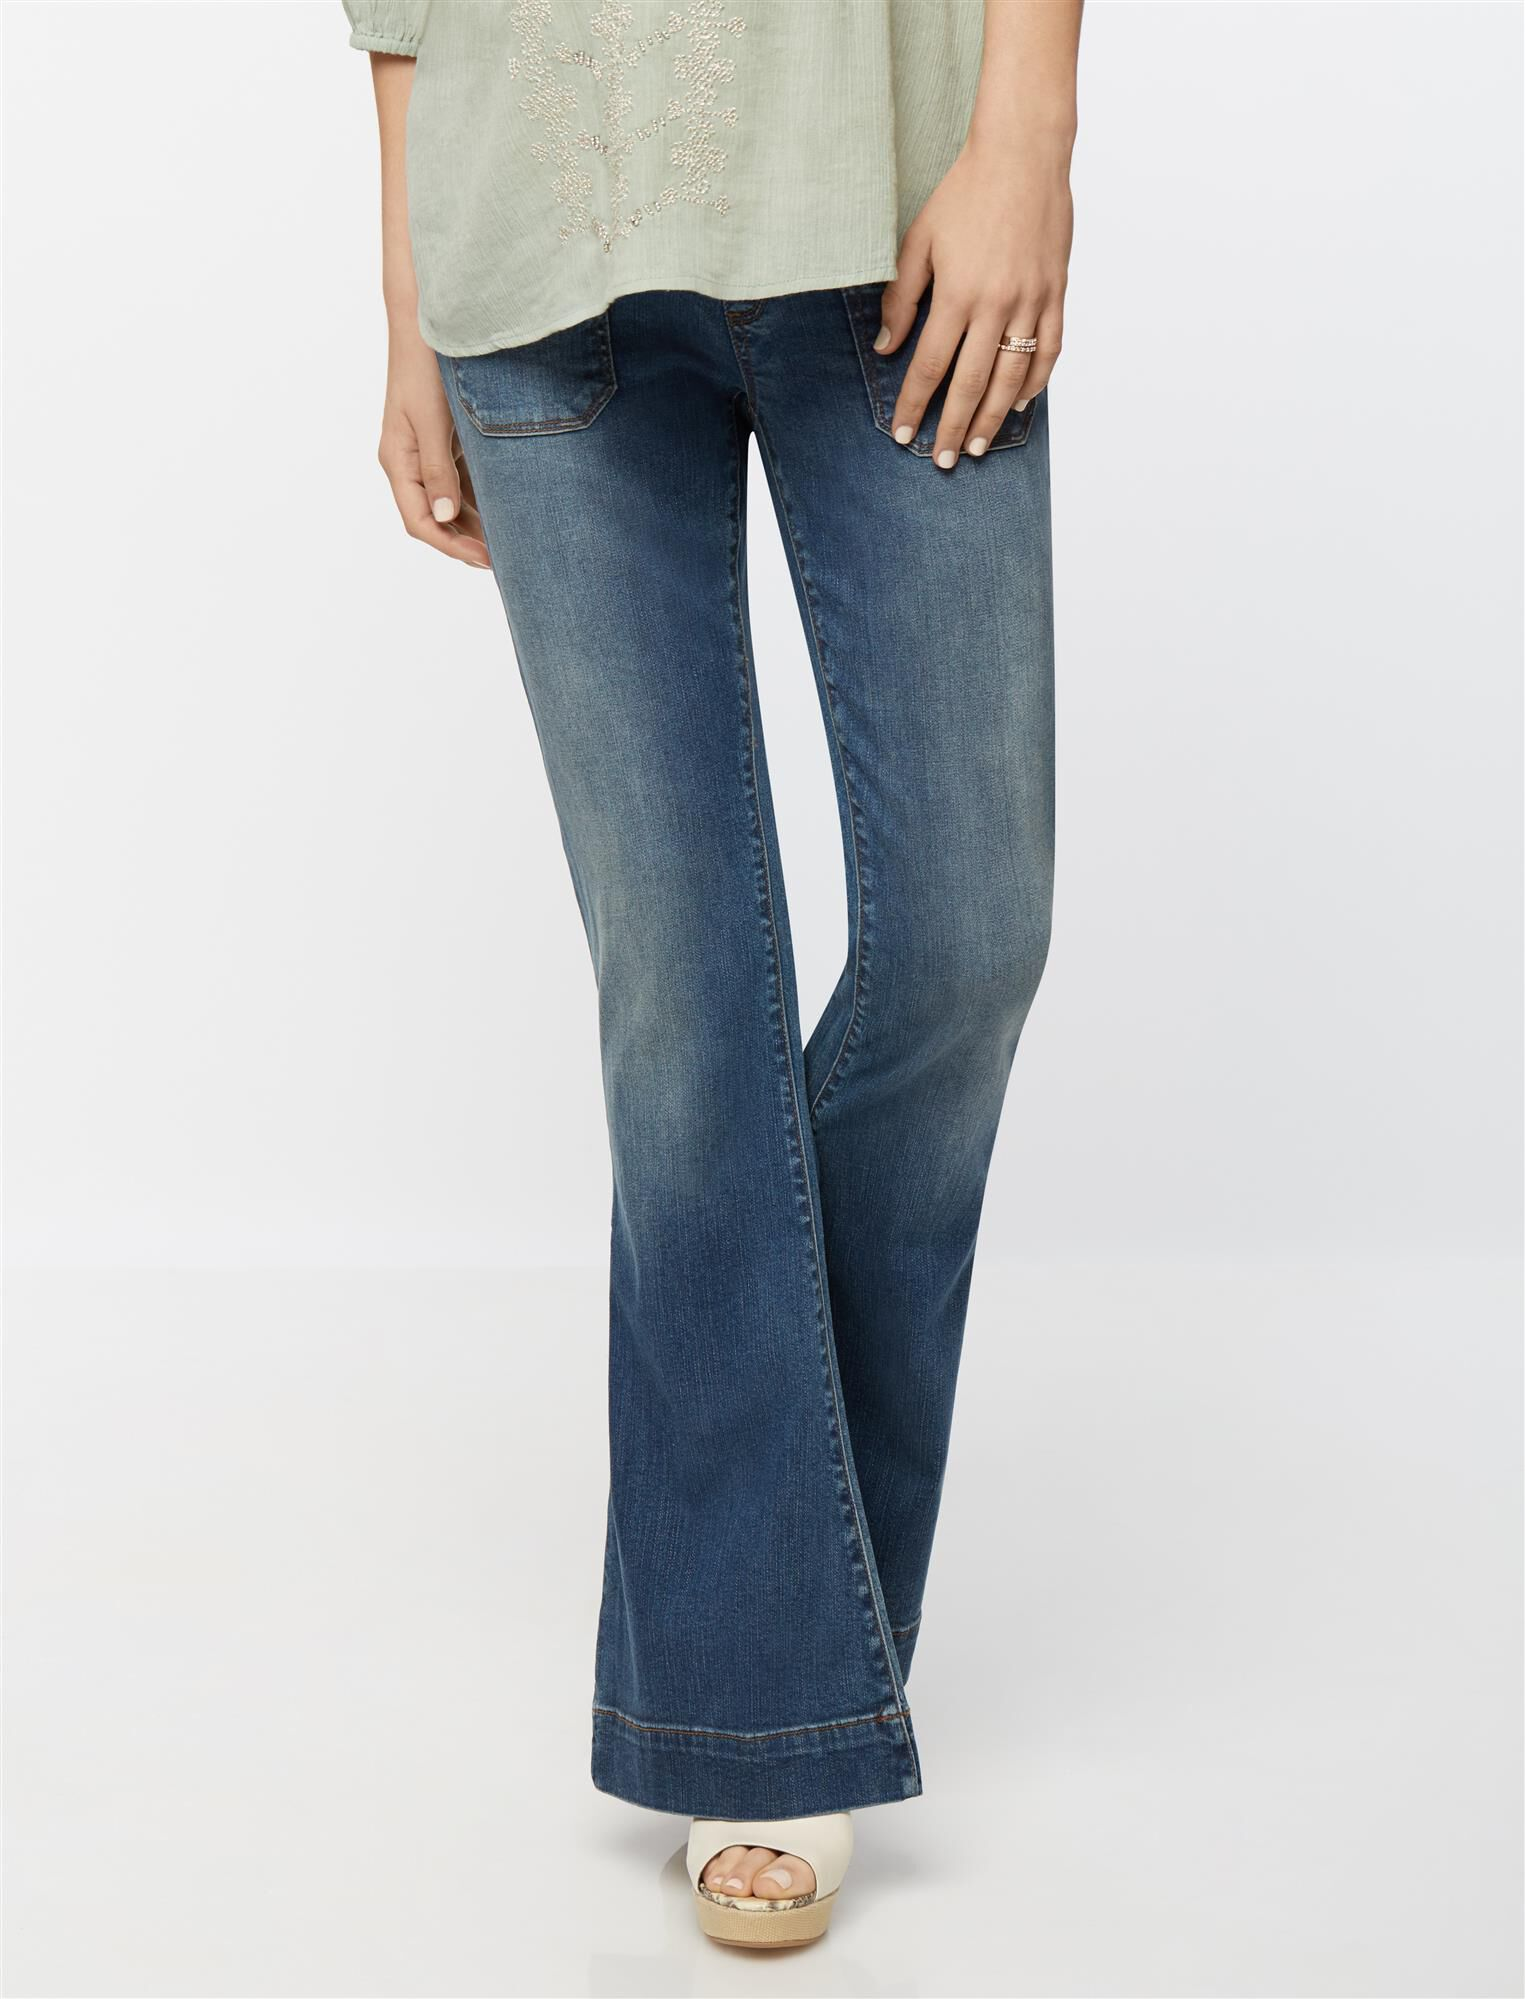 Luxe Essentials Denim Secret Fit Belly Flare Maternity Jeans